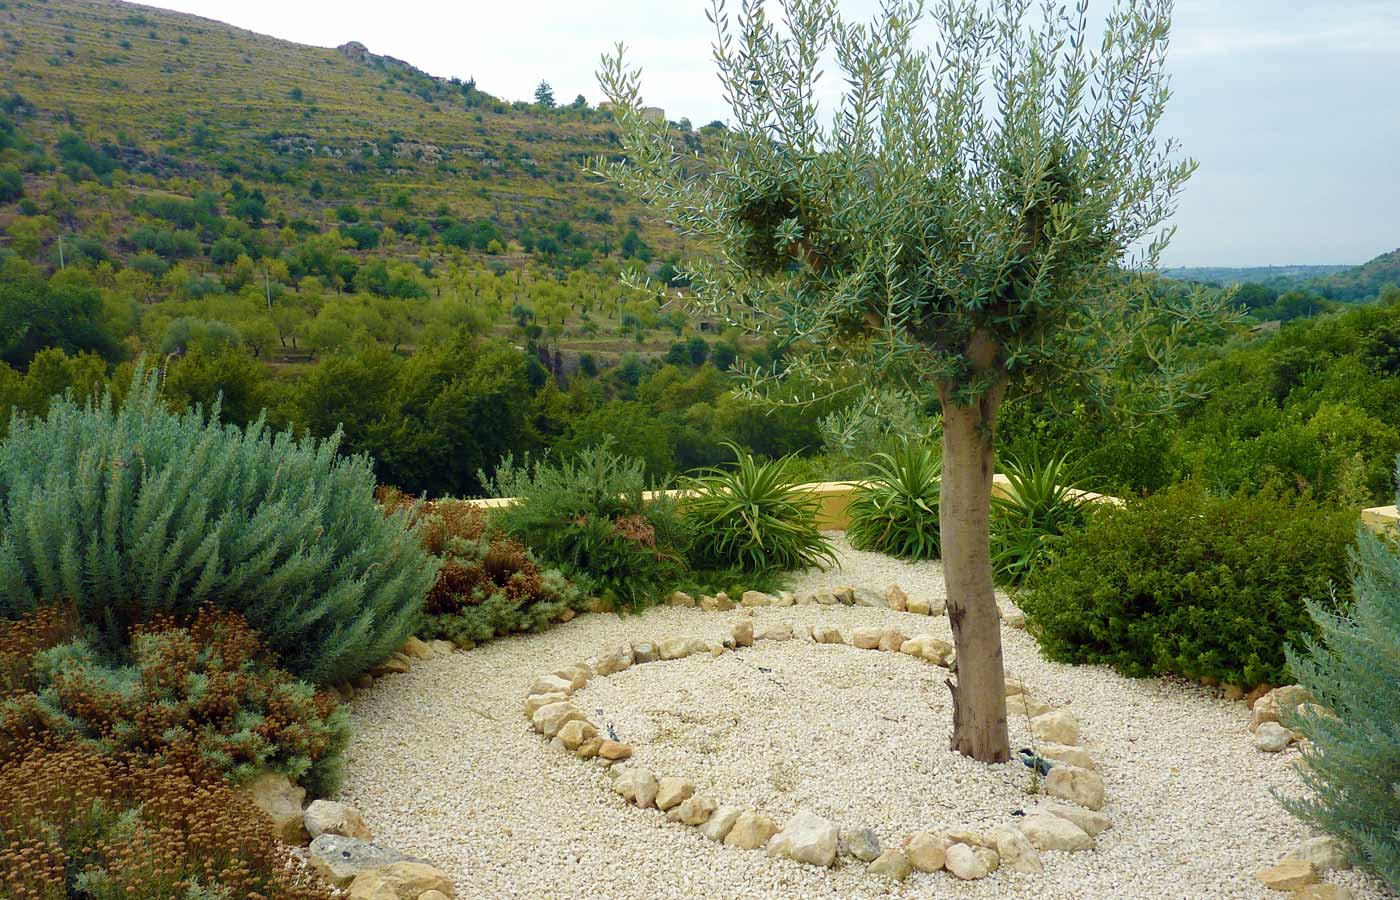 Mediterranean garden design for rural garden in sicily for Decoration jardin mediterraneen